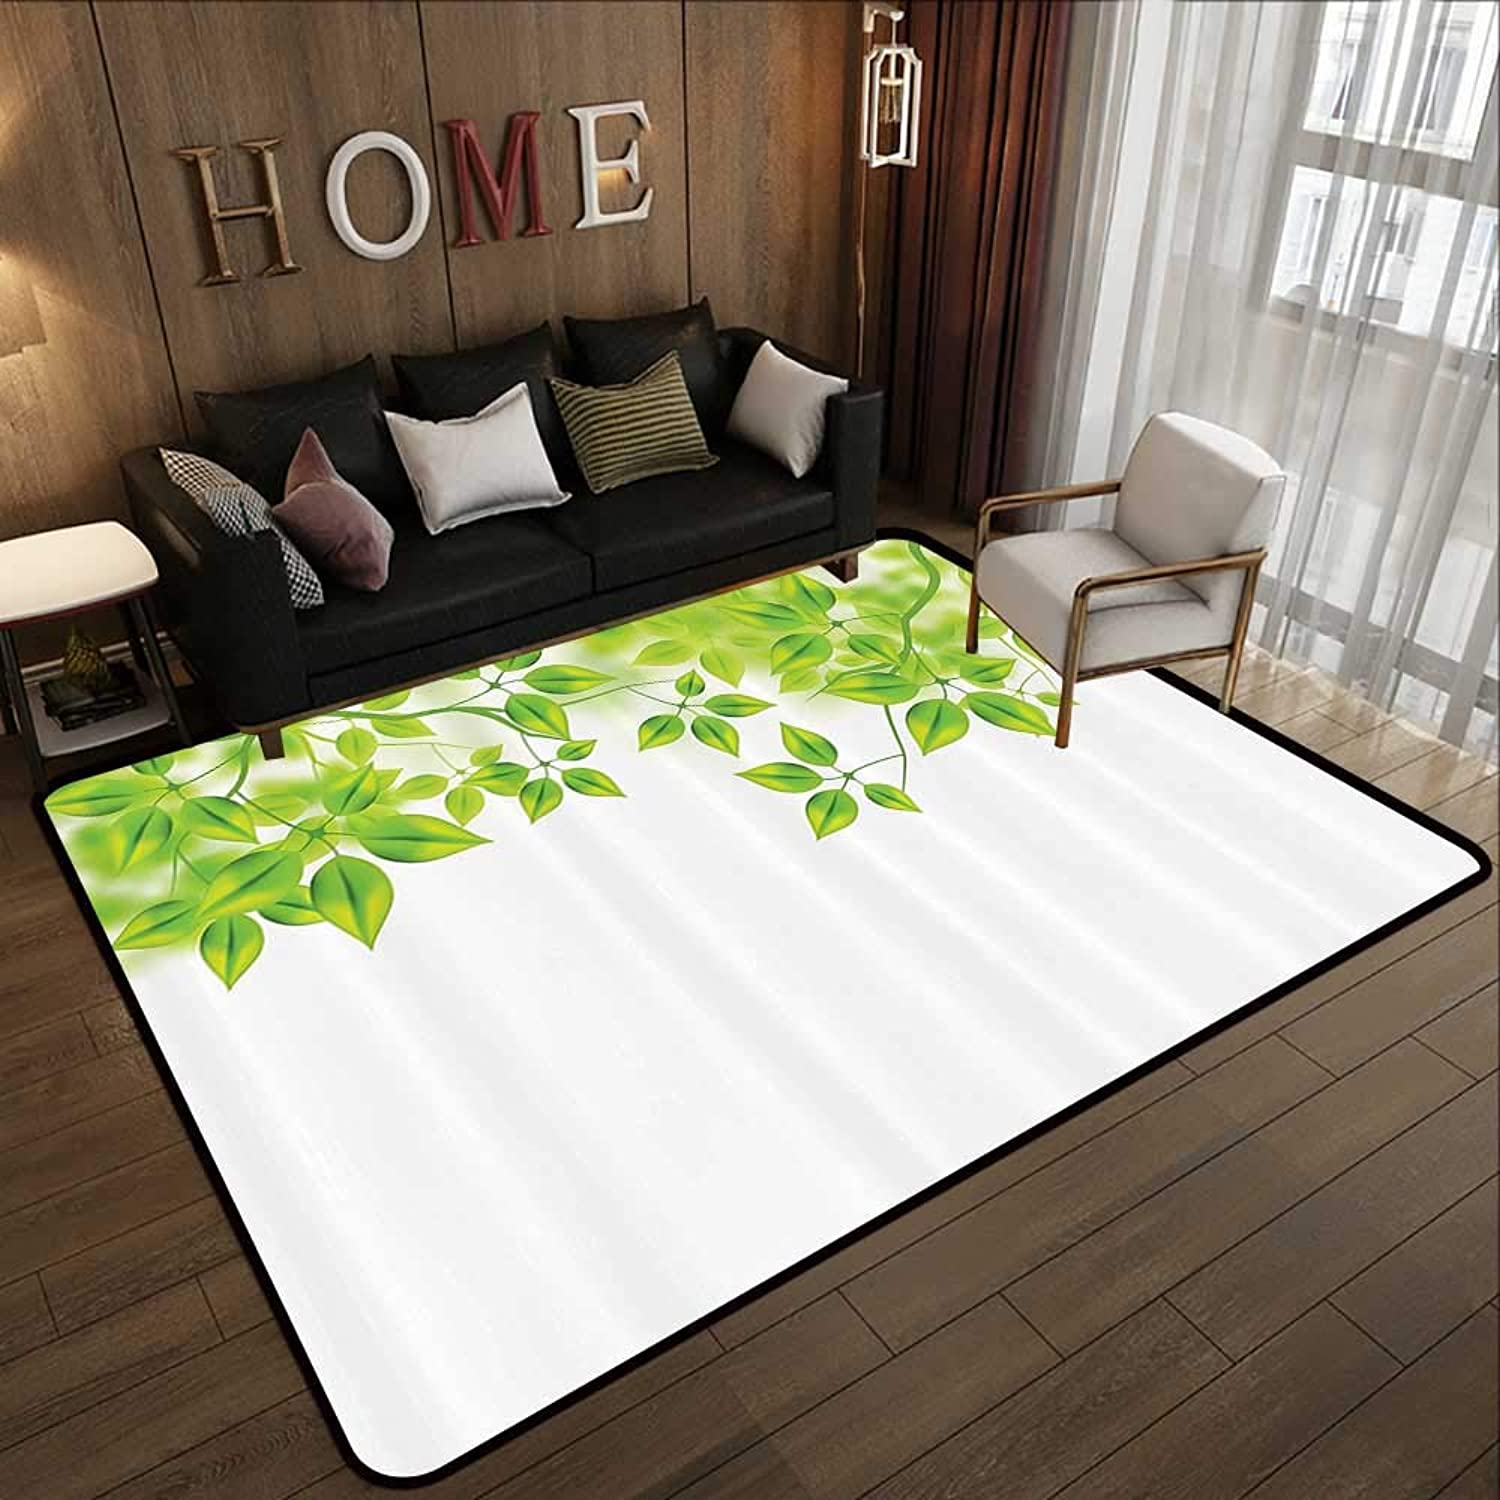 Carpet mat,Leaves Decor,Freshening Background with Vibrant Leaves in The Spring Flourishing Open Up Plant Theme,Green White 71 x 81.5  Floor Mat Entrance Doormat